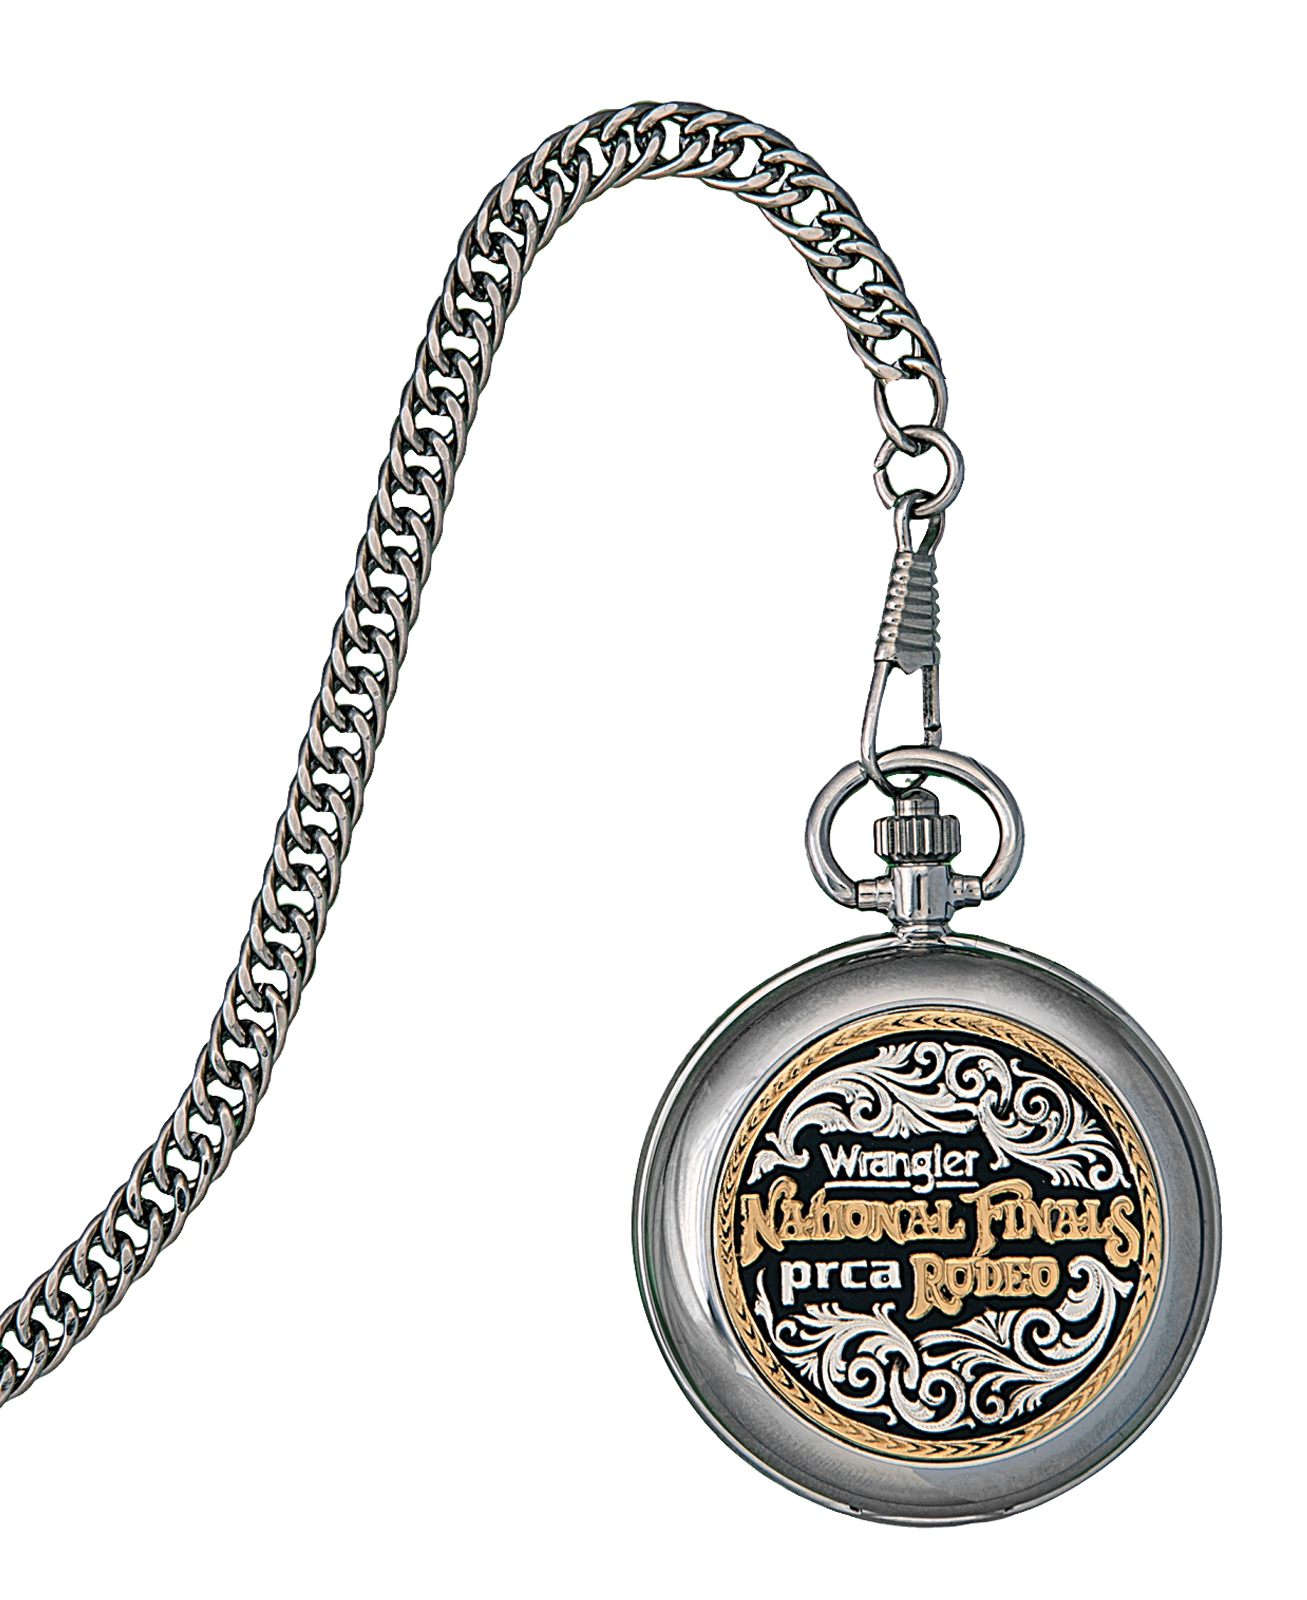 Montana Silversmiths 2013 WNFR Pocket Watch